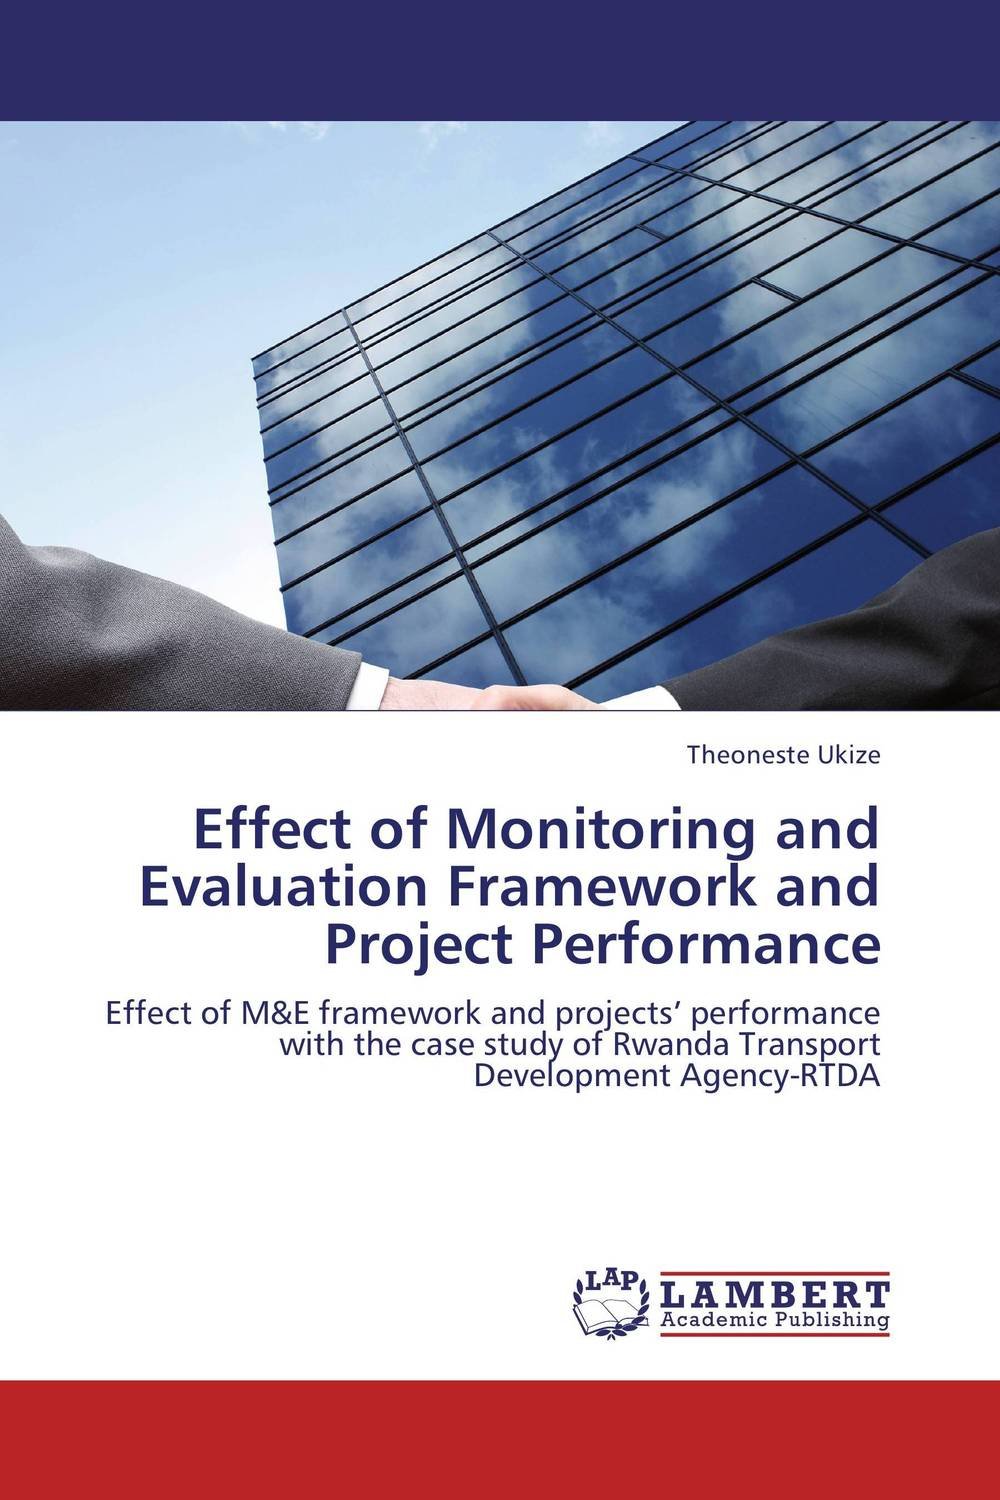 Effect of Monitoring and Evaluation Framework and Project Performance